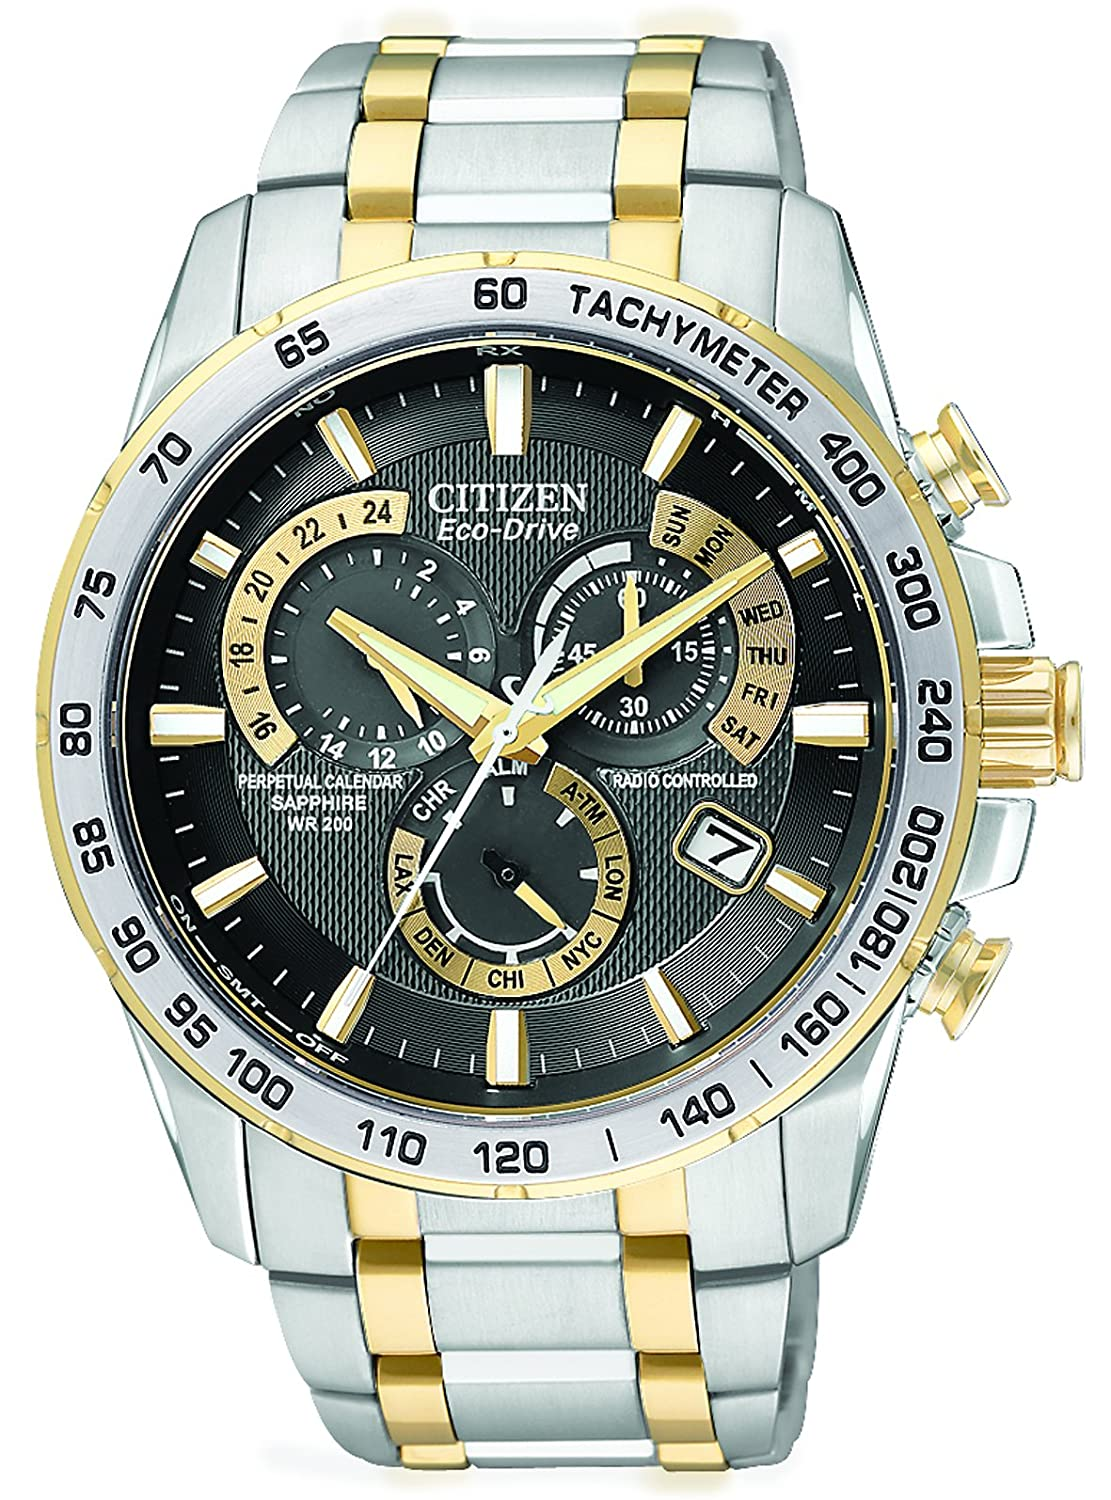 f778b1ef2 Citizen Men's Eco-Drive Chronograph Watch AT4004-52E with a Black Dial and  a Two Tone Stainless Steel Bracelet: Amazon.co.uk: Watches